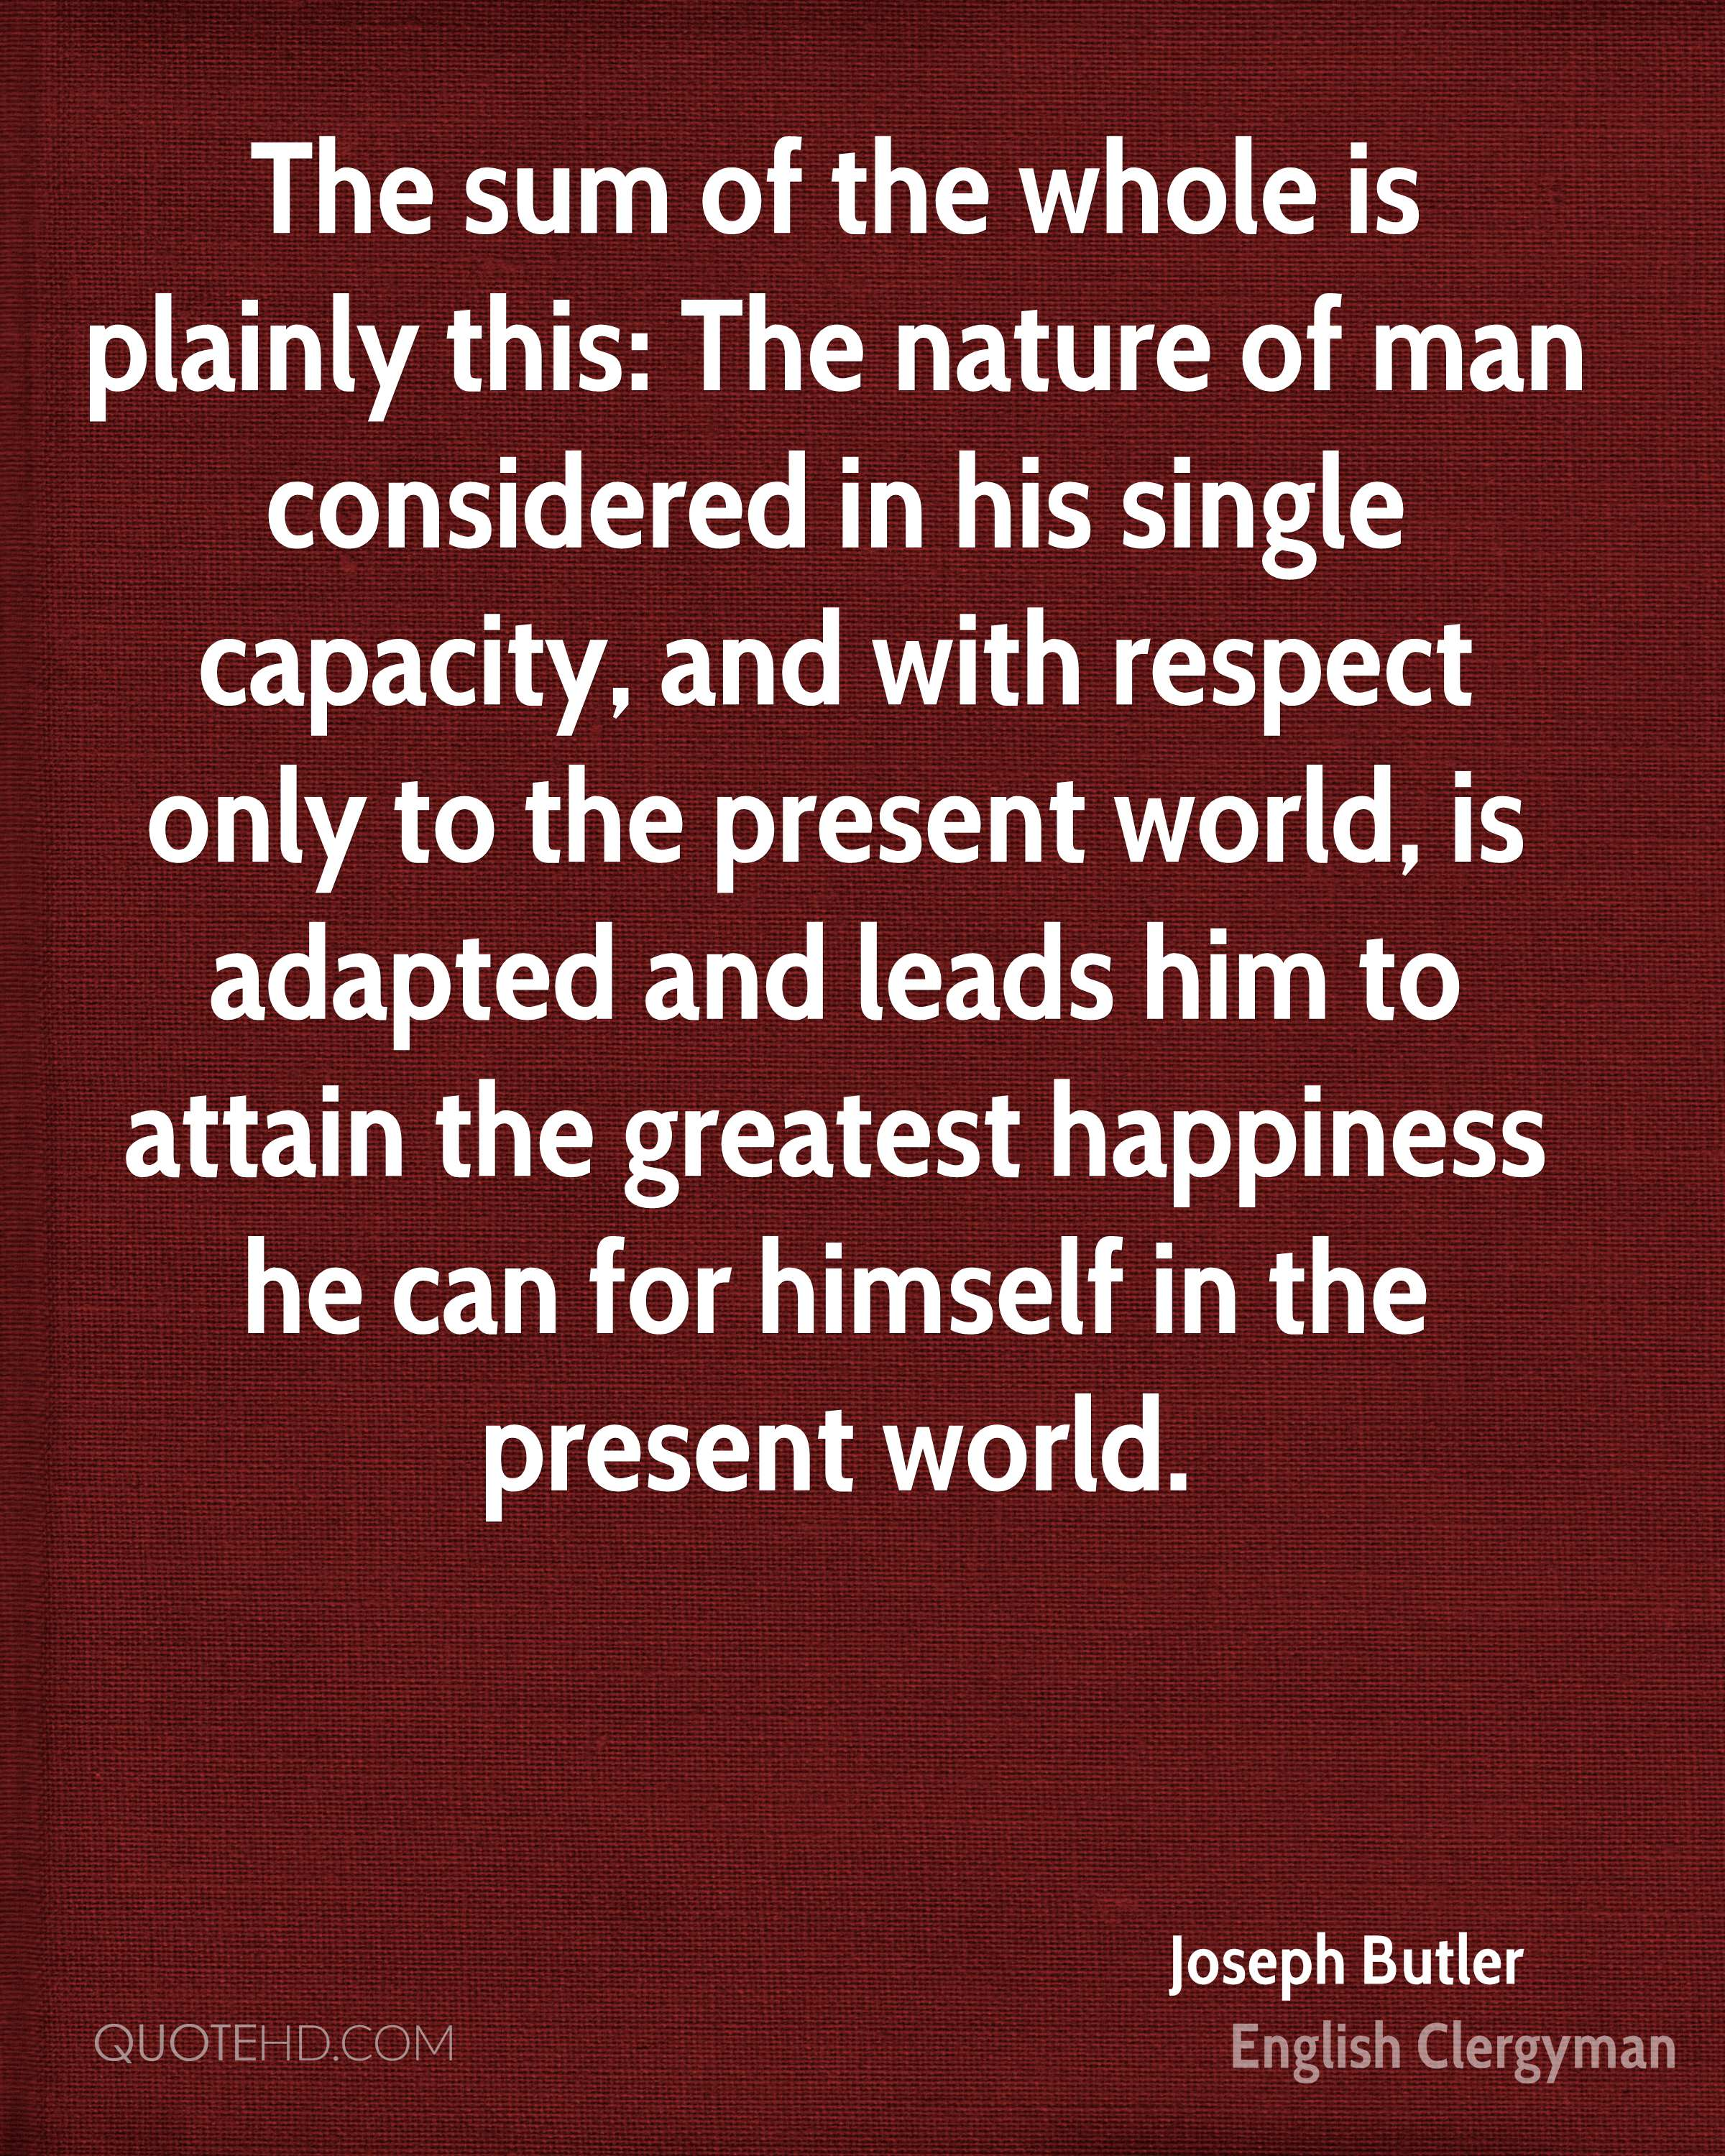 The sum of the whole is plainly this: The nature of man considered in his single capacity, and with respect only to the present world, is adapted and leads him to attain the greatest happiness he can for himself in the present world.